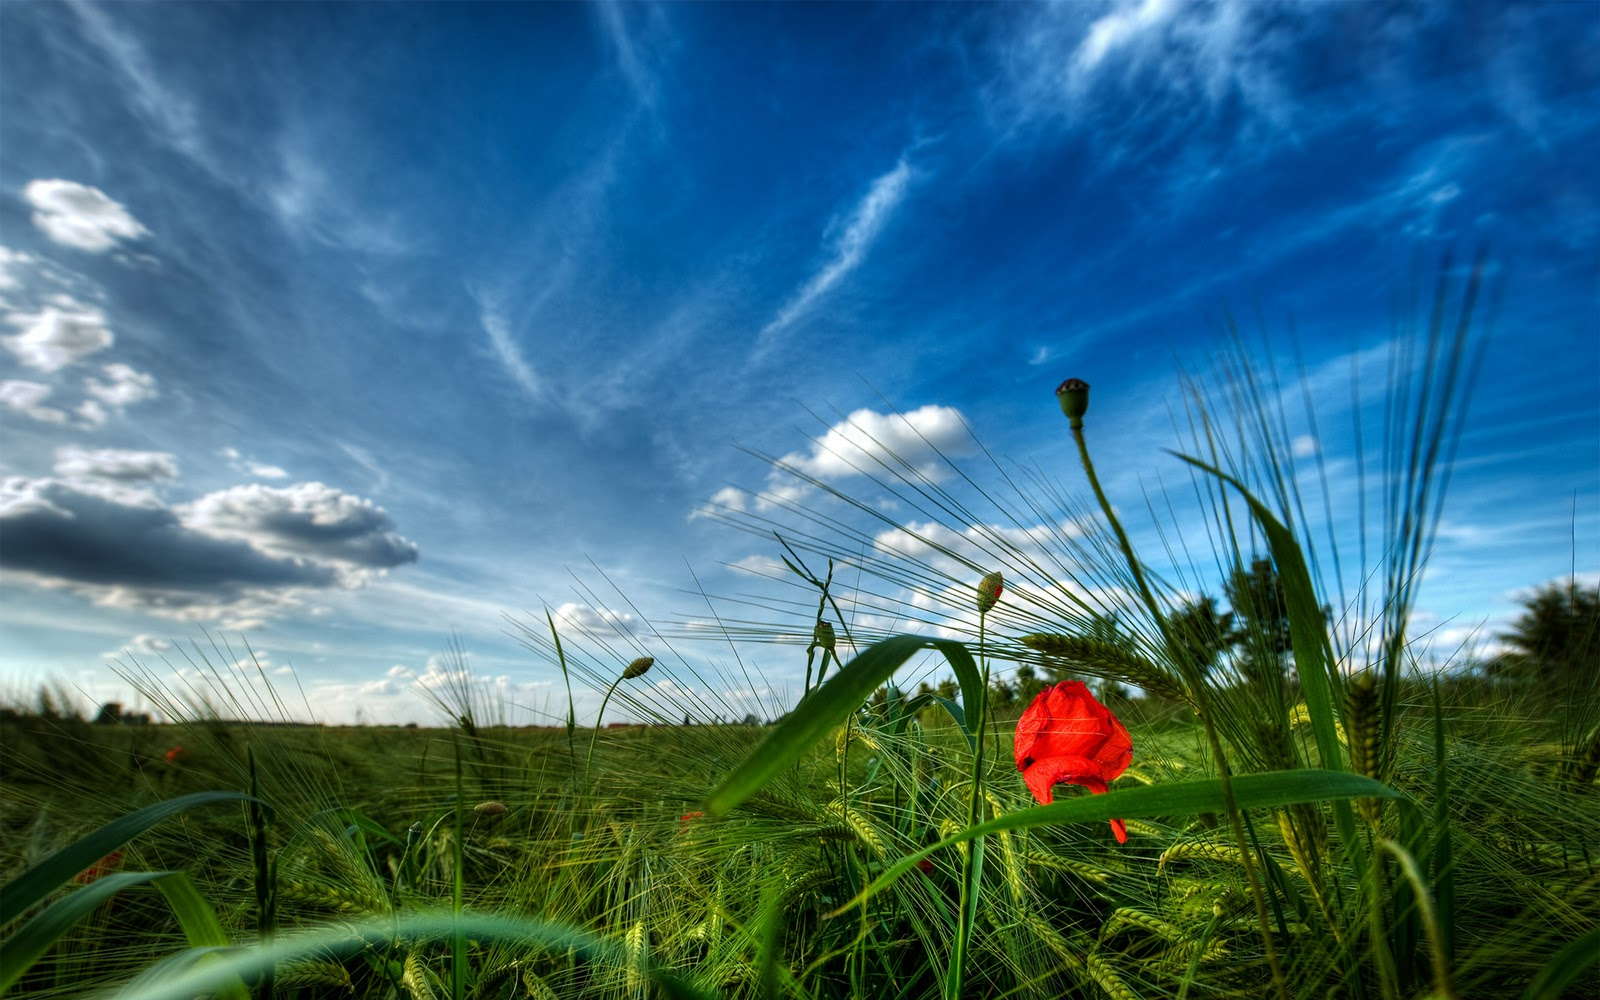 http://4.bp.blogspot.com/-SP72CUs5Q3s/UV0pAE7qf8I/AAAAAAAAD4g/zRRIAIziSZA/s1600/nature+wallpaper+hd+flower+n+grass+wid+sky.jpg